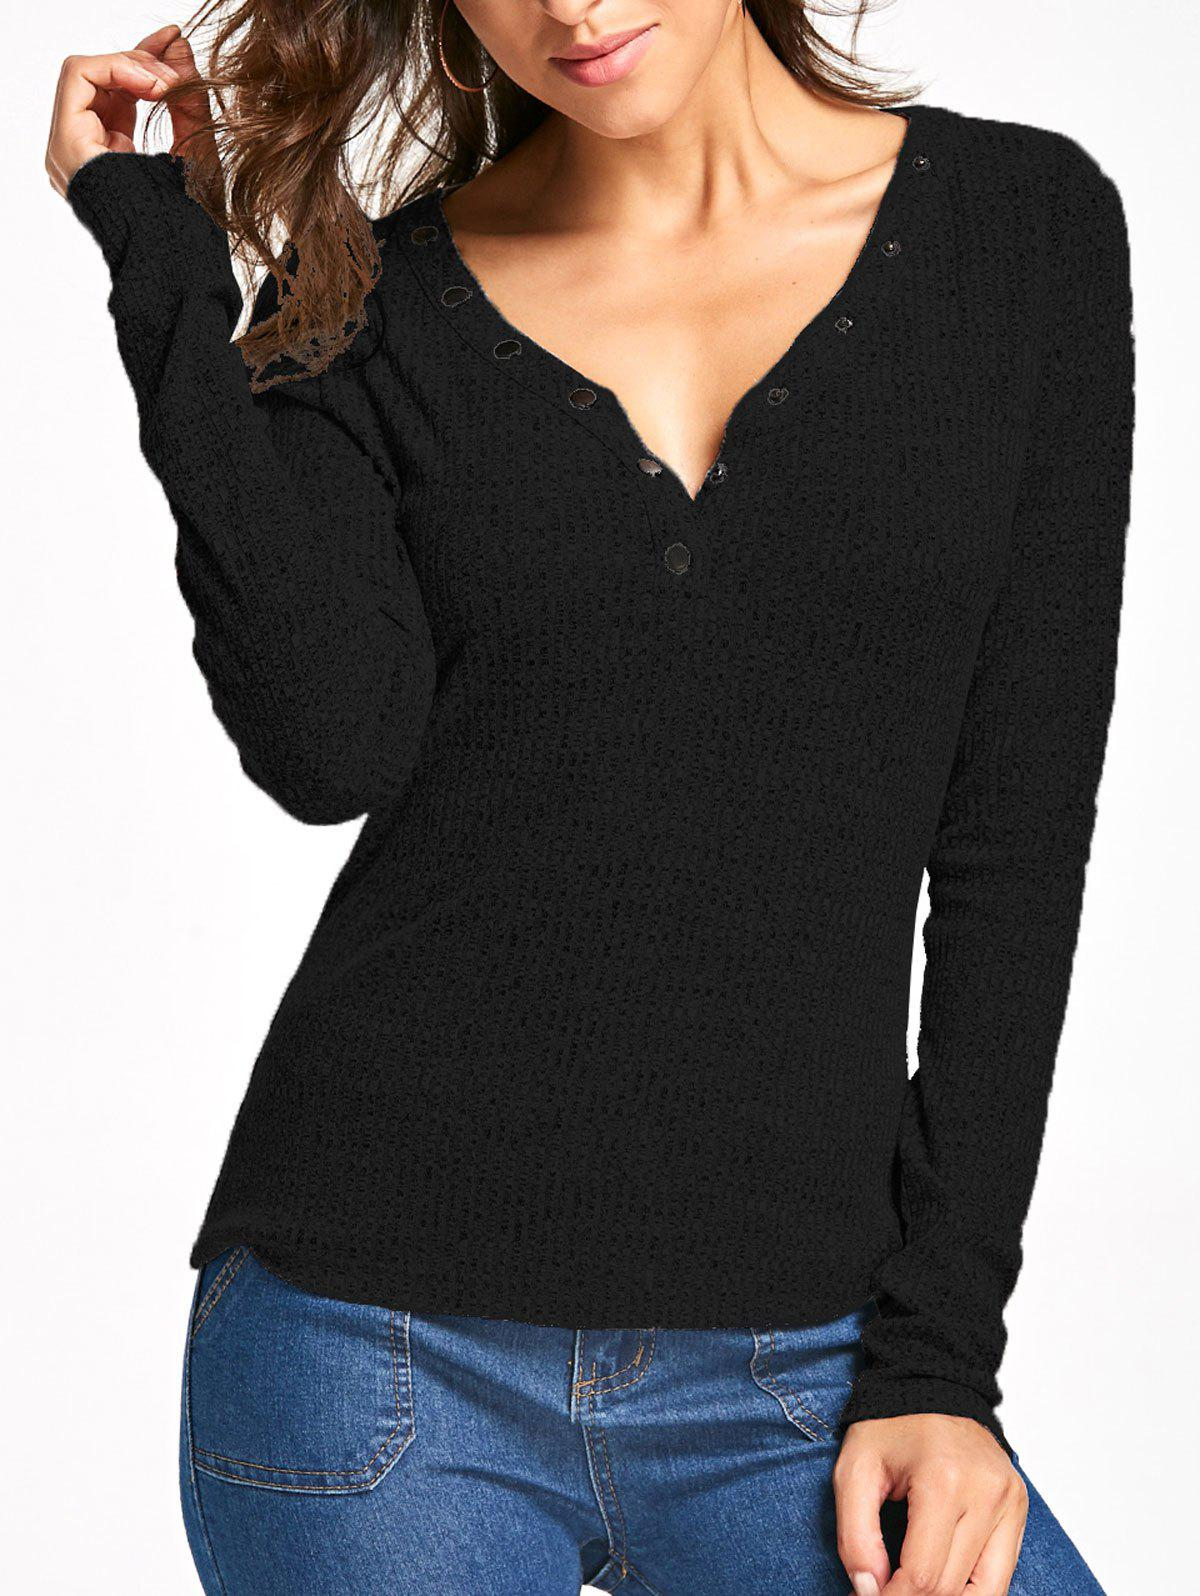 Long Sleeve Button V Neck Ribbed TopWOMEN<br><br>Size: 2XL; Color: BLACK; Material: Cotton Blends,Polyester,Spandex; Shirt Length: Regular; Sleeve Length: Full; Collar: V-Neck; Style: Fashion; Pattern Type: Solid; Season: Fall,Spring; Weight: 0.2540kg; Package Contents: 1 x Top;